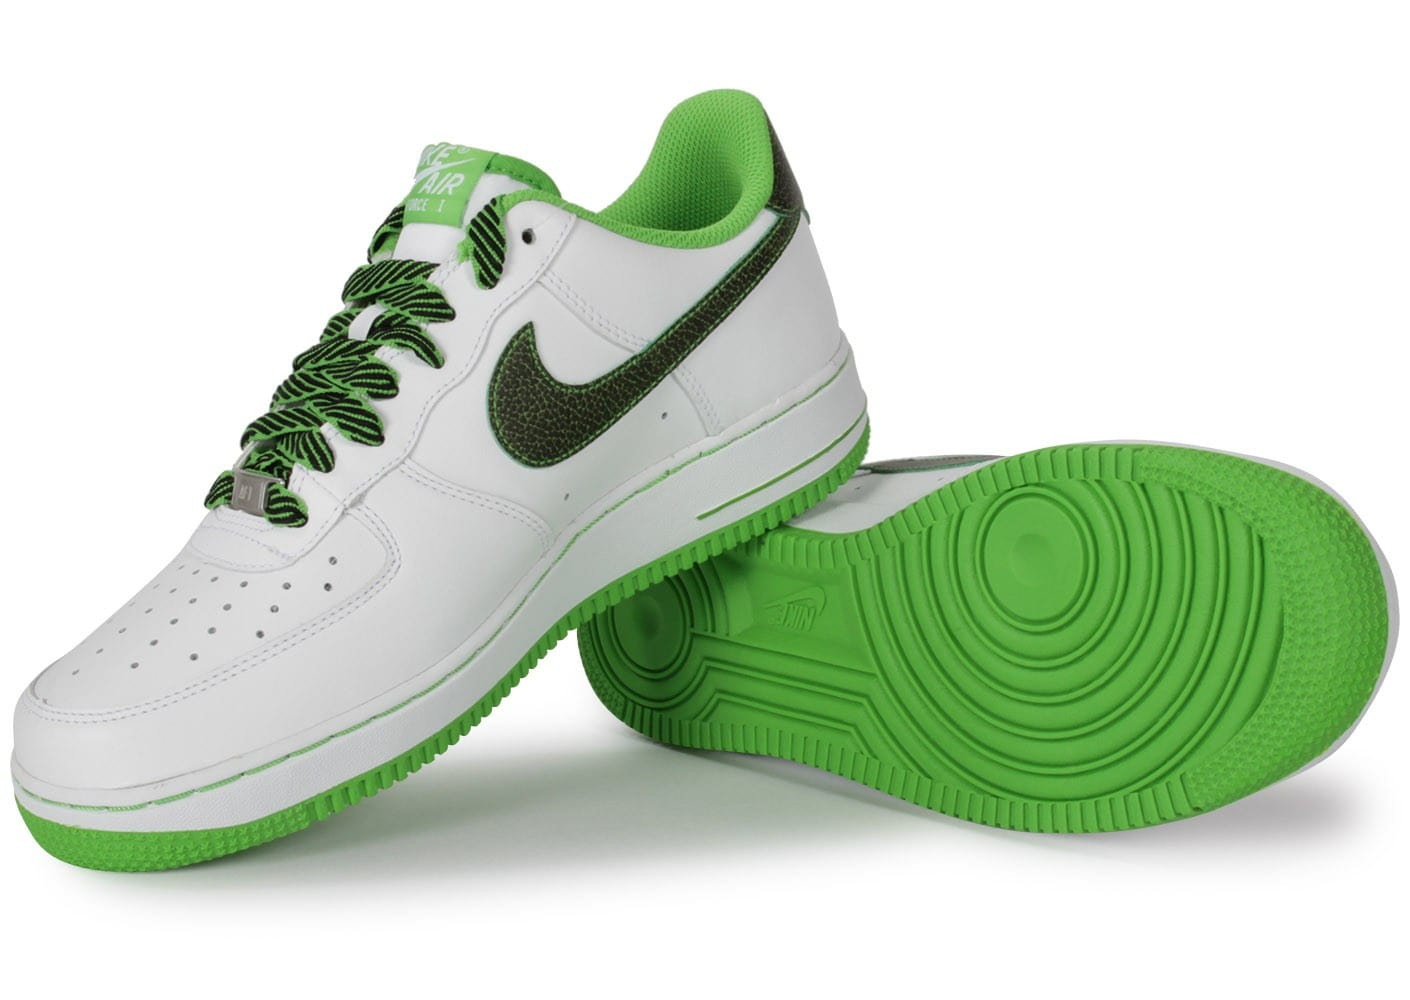 nike air force 1 low blanche vert pomme chaussures. Black Bedroom Furniture Sets. Home Design Ideas